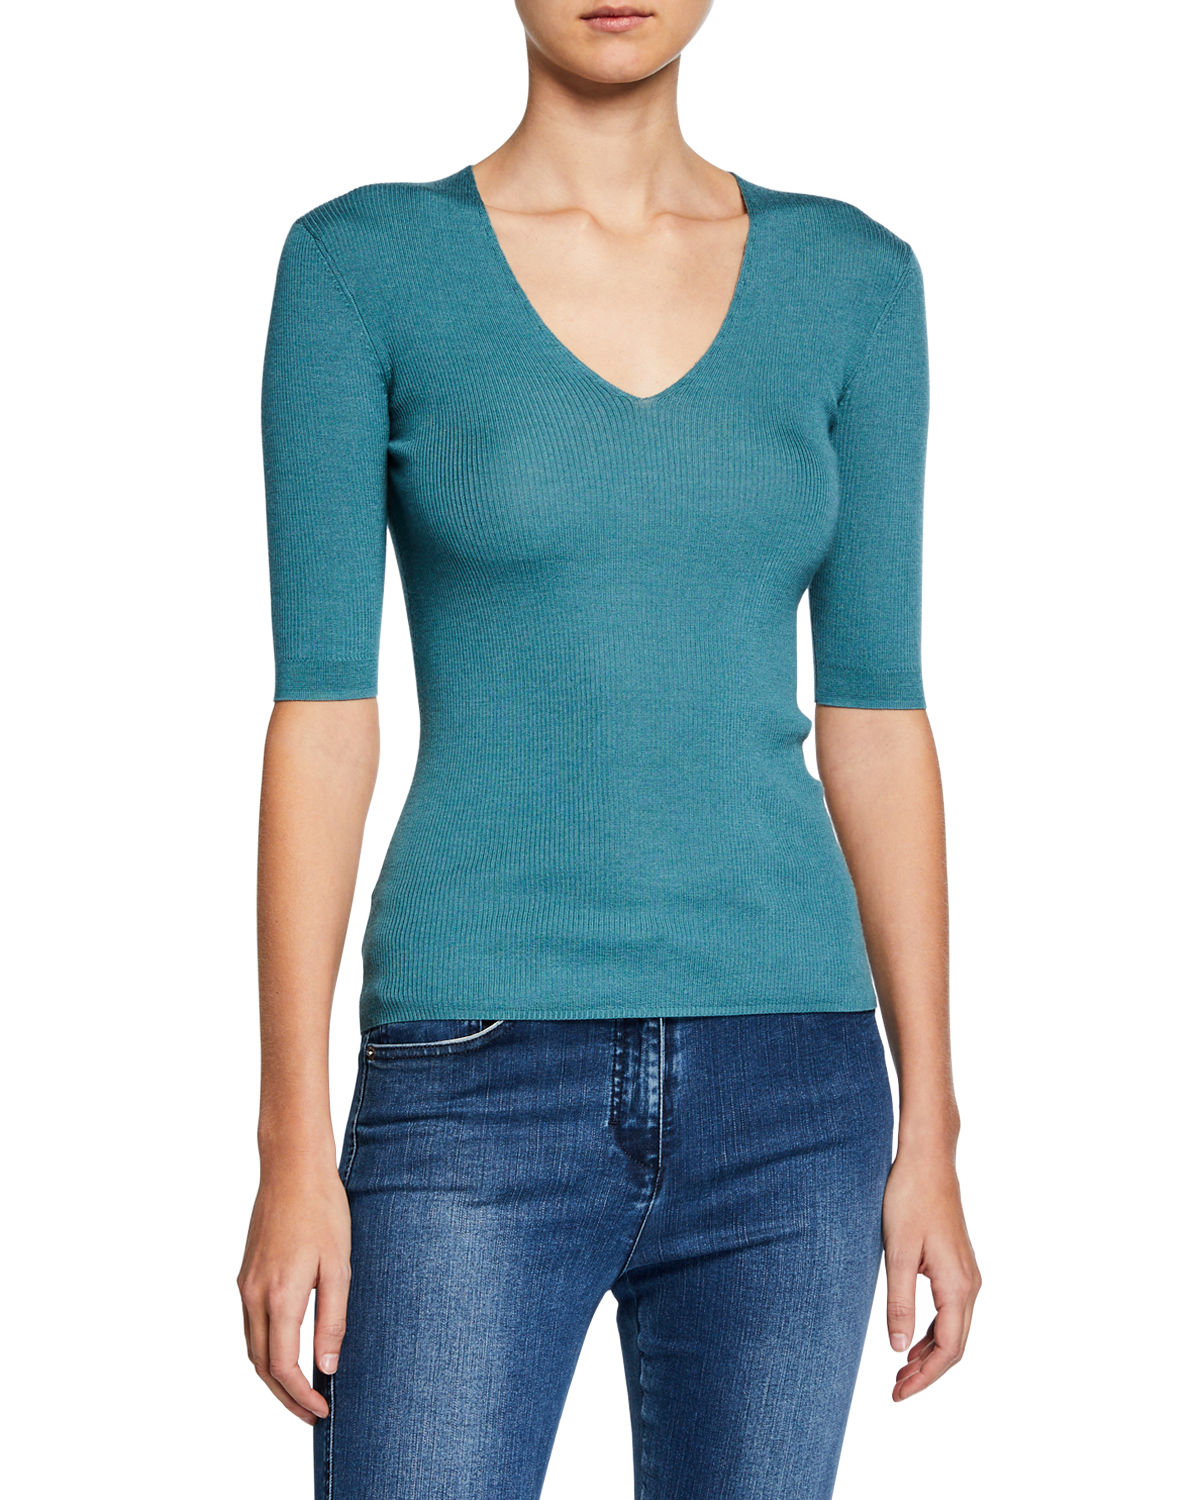 St. John Knits RIB KNIT FITTED TOP